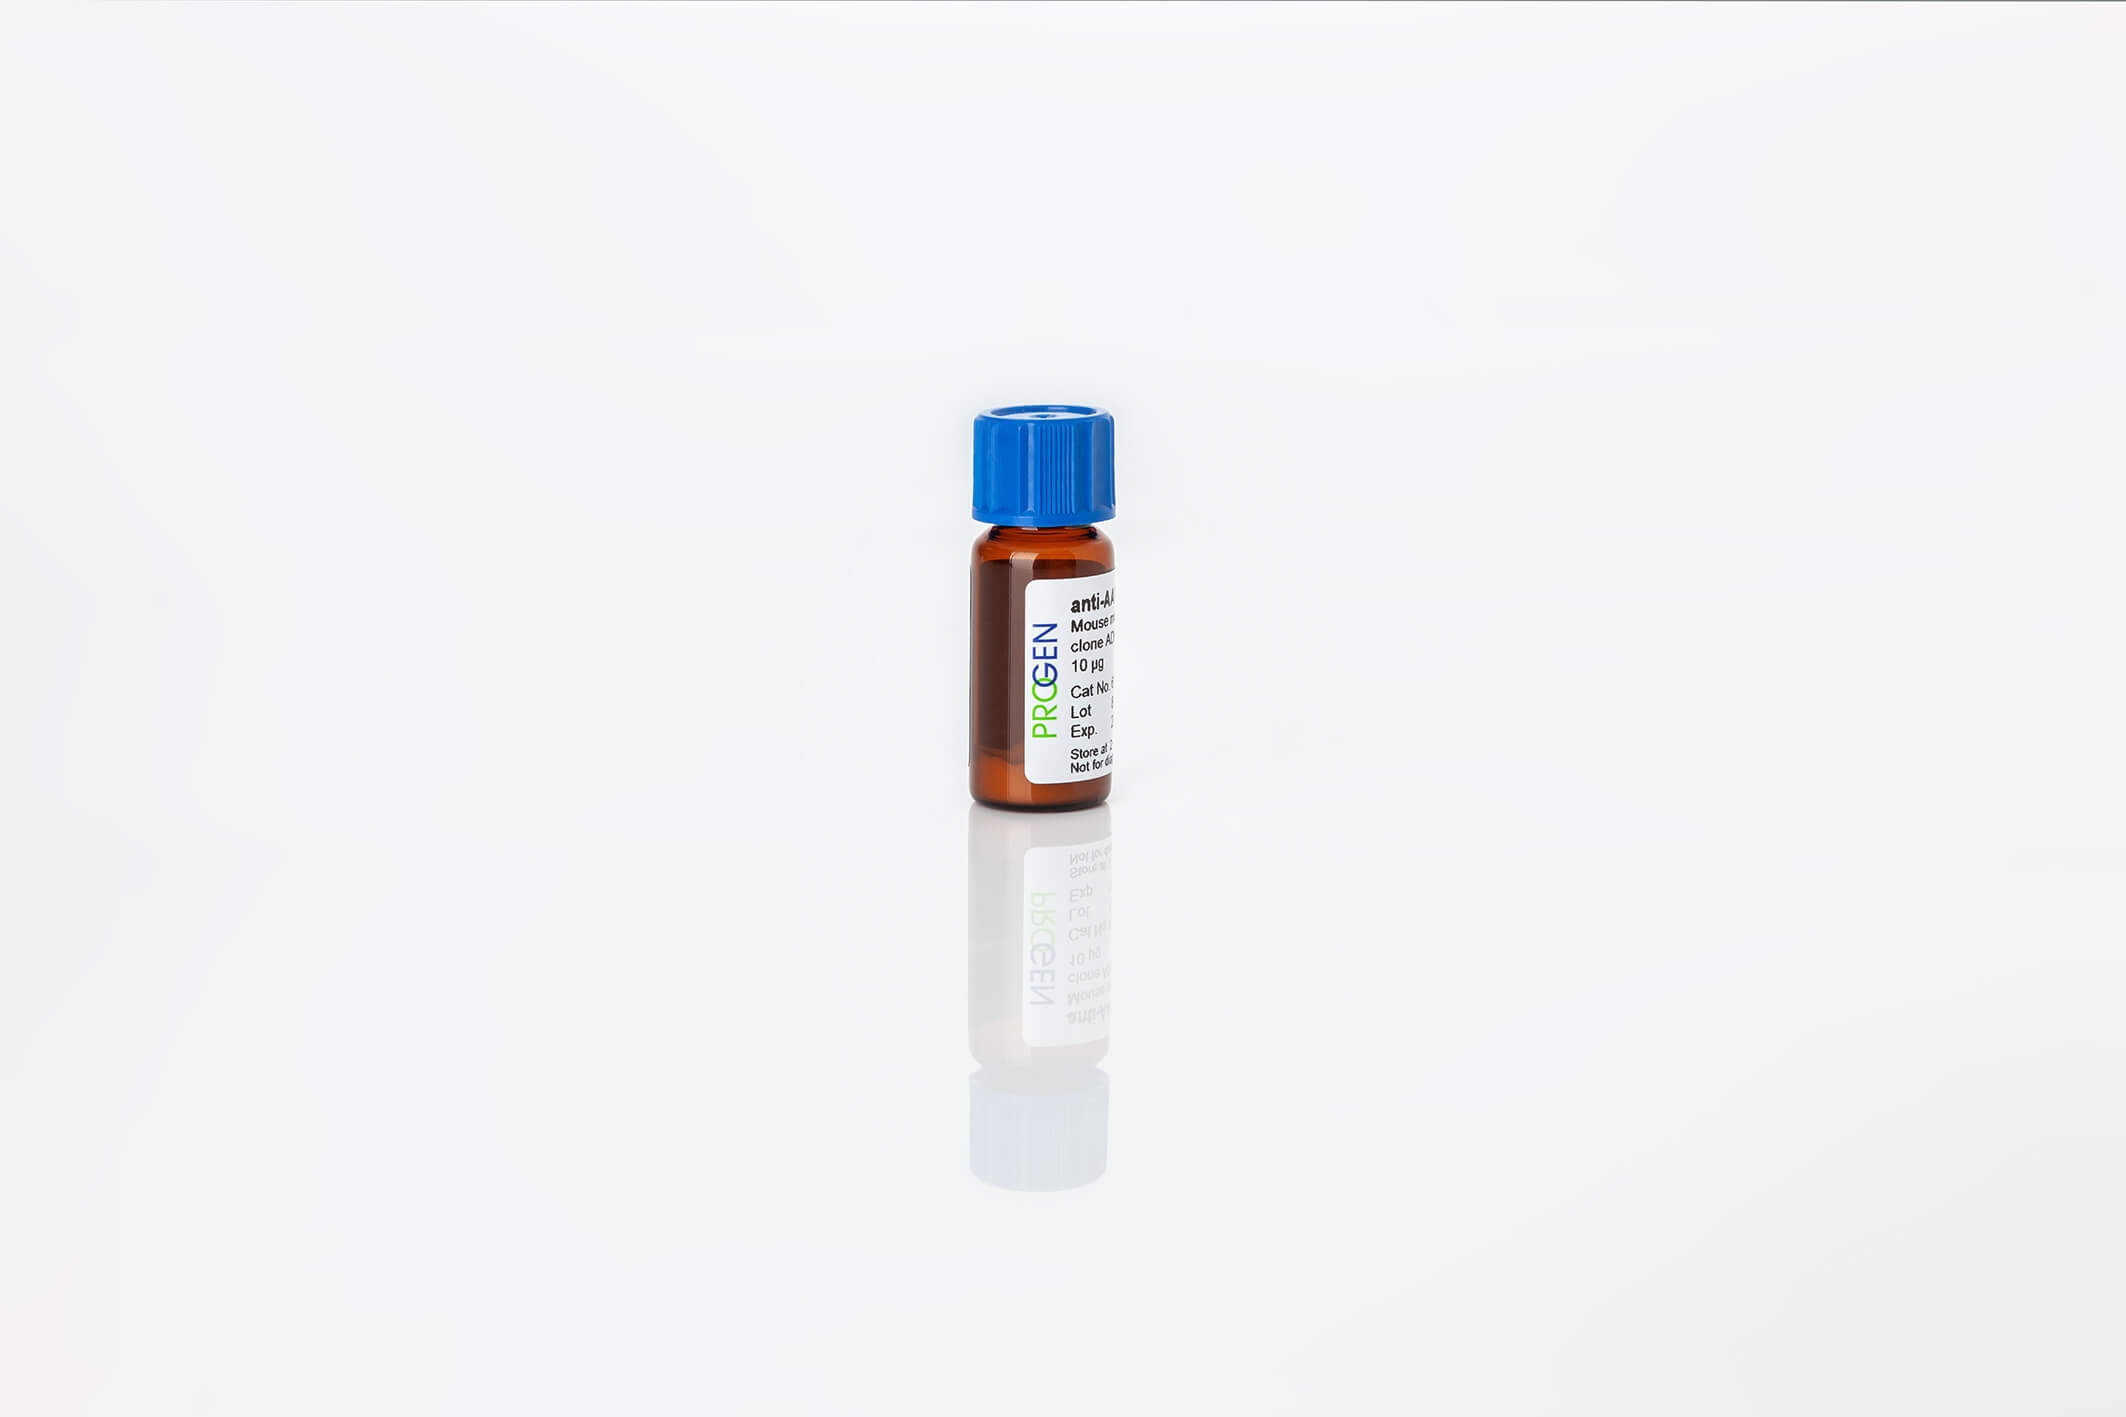 anti-Nucleolar Protein NO38 mouse monoclonal, No-185, supernatant concentrate